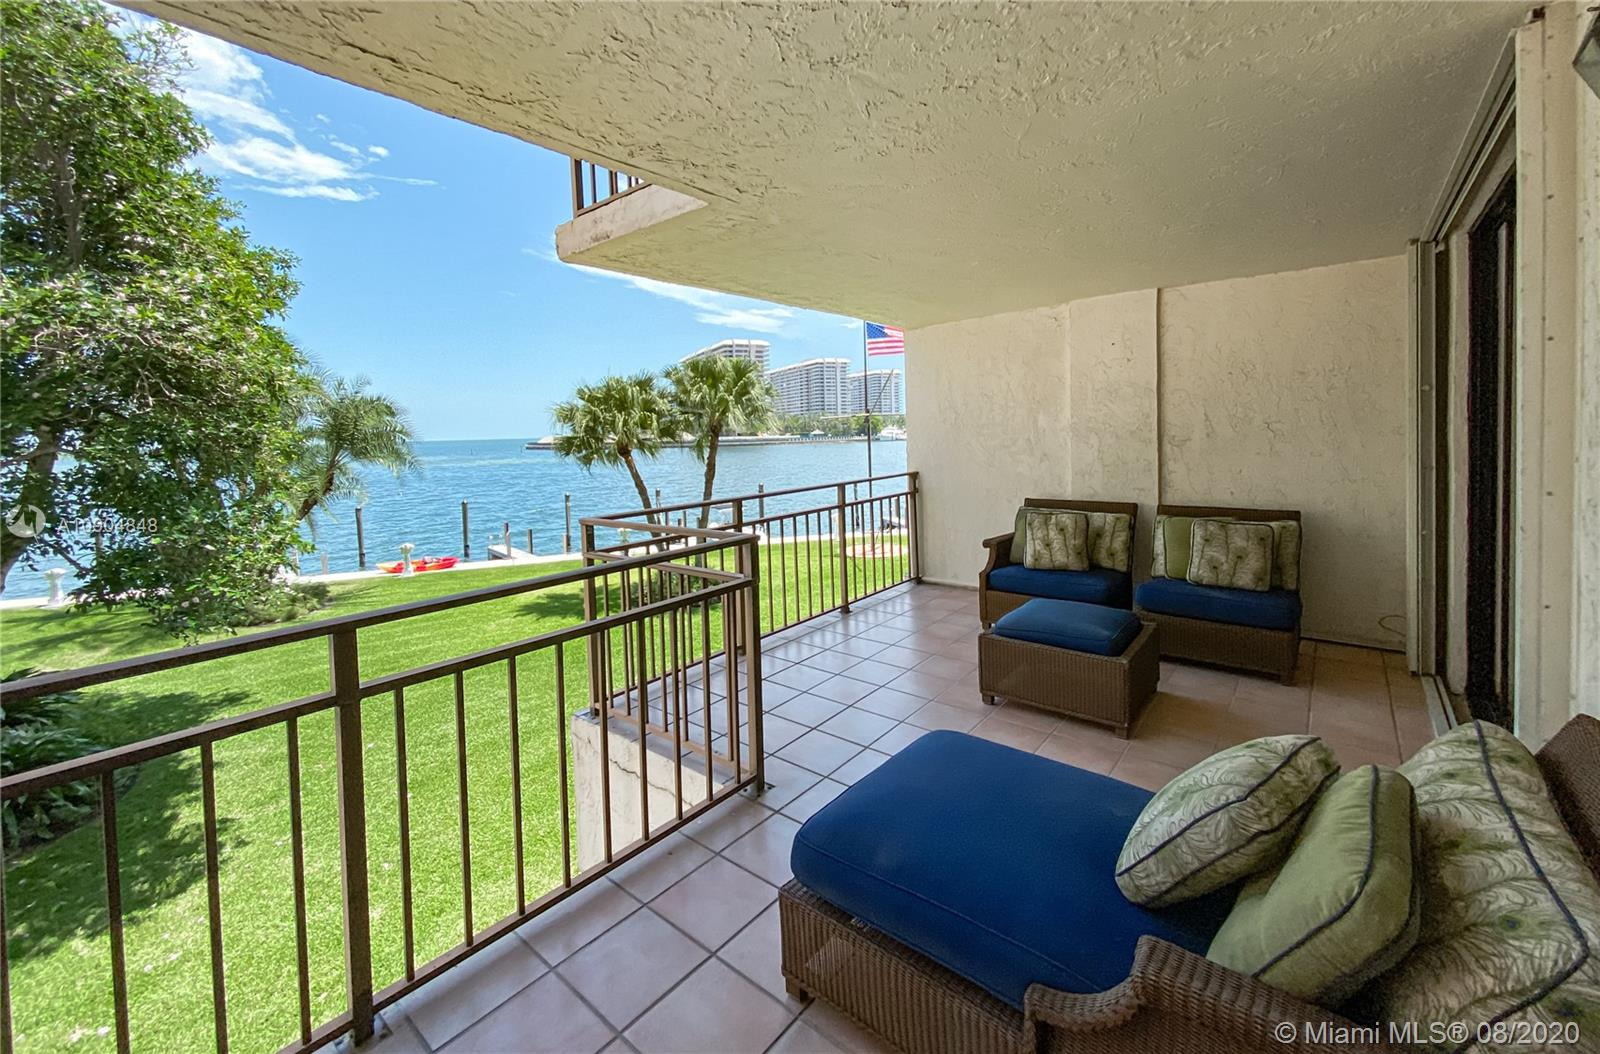 This hidden waterfront gem offers 2 beds, 2.5 baths & multi million dollar water views over the Biscayne Bay/Ocean. This rarely available corner unit offers 1,139 SF & classic finishes. The open kitchen is great for entertainment & comes with beautiful granite countertops. The living room & master bedroom each have access to the balcony, the master has sliding doors that open to the living area for flexible use of open areas. The Pelican Reef condo offers only 3 units per floor & is located in the quiet & high-end neighborhood of Coconut Grove w/ superior water access, serene surroundings. It has completed major updates such as new A/C & new seawall & docks. Boat docks are available for lease. Additional features of this building are a wonderfully conceived pool area with a covered patio.